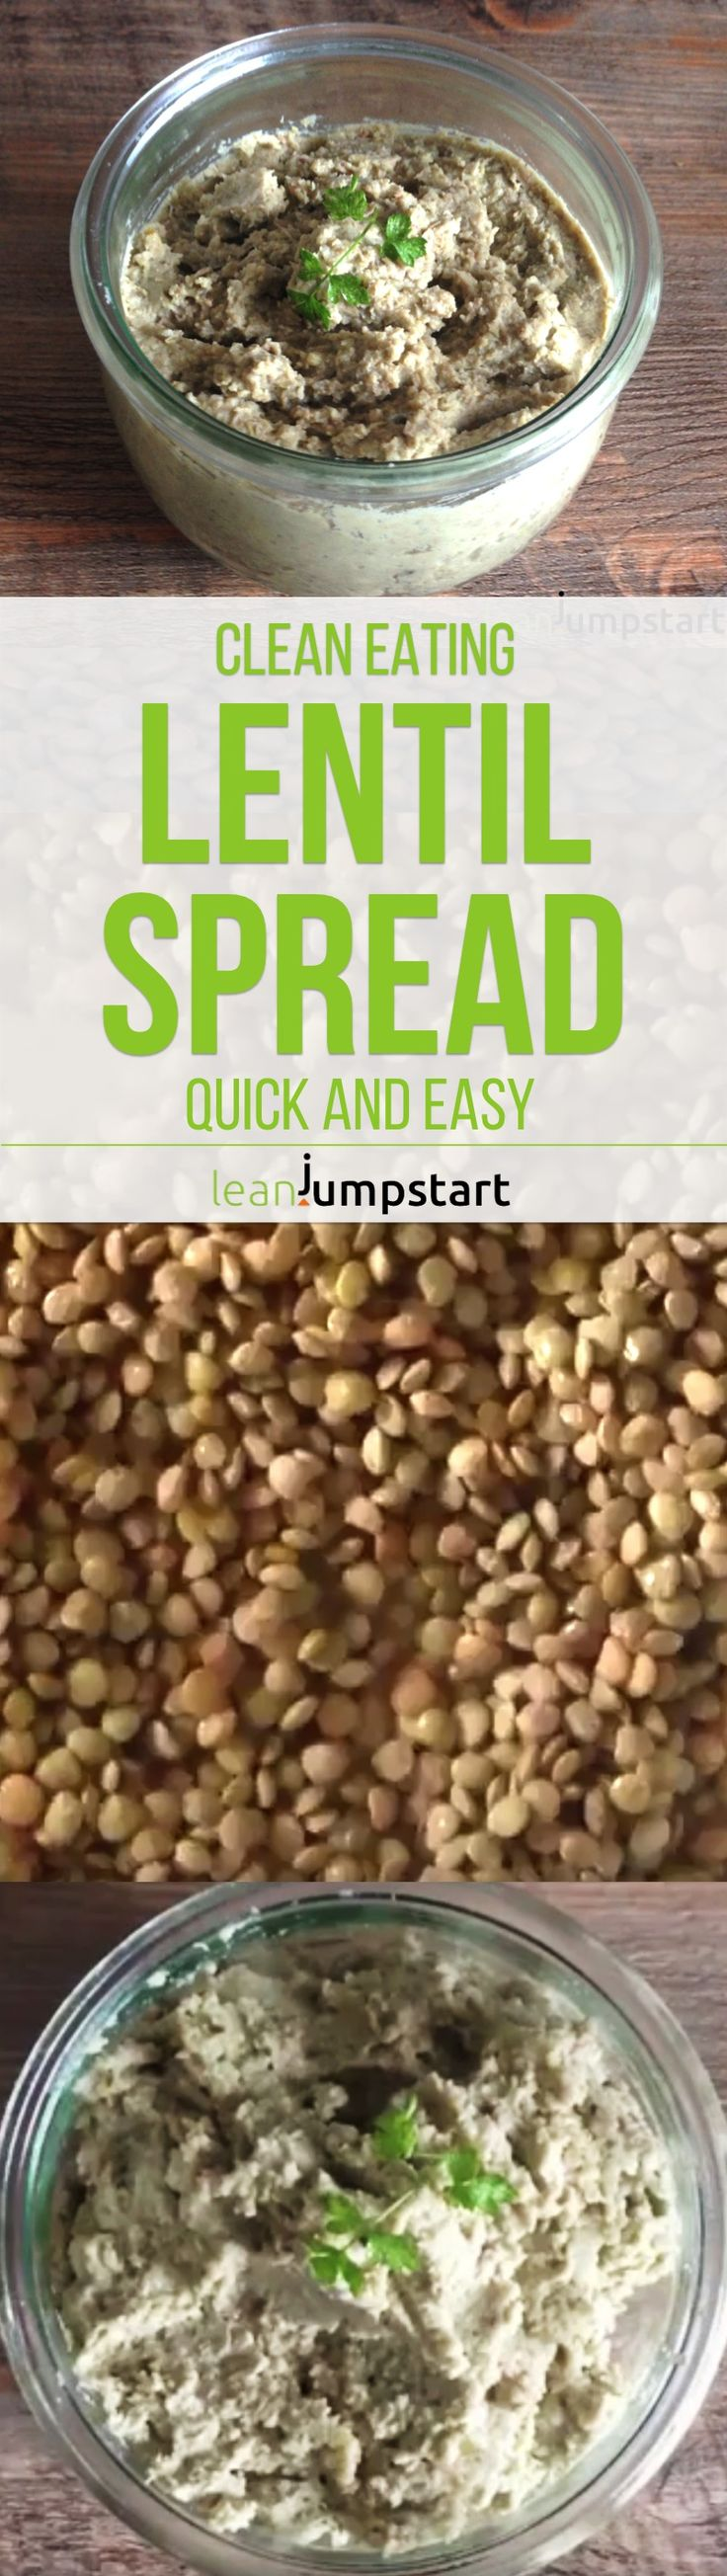 Need a healthy spread recipe? This clean eating lentil spread is vegan, easy to…